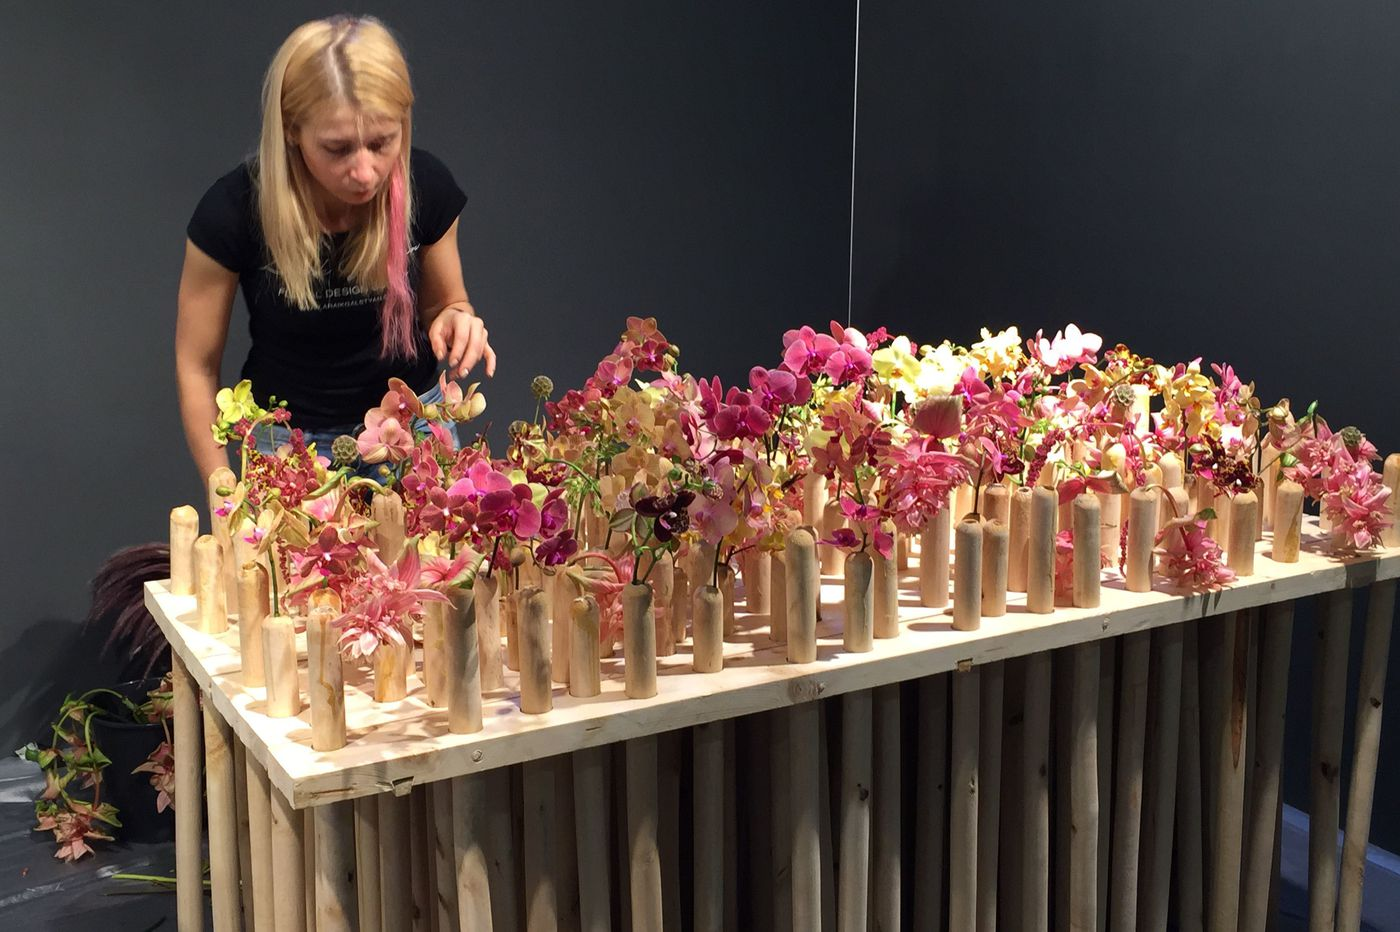 Want a 'Great British Bake Off' for florists? The Flower Show has it.